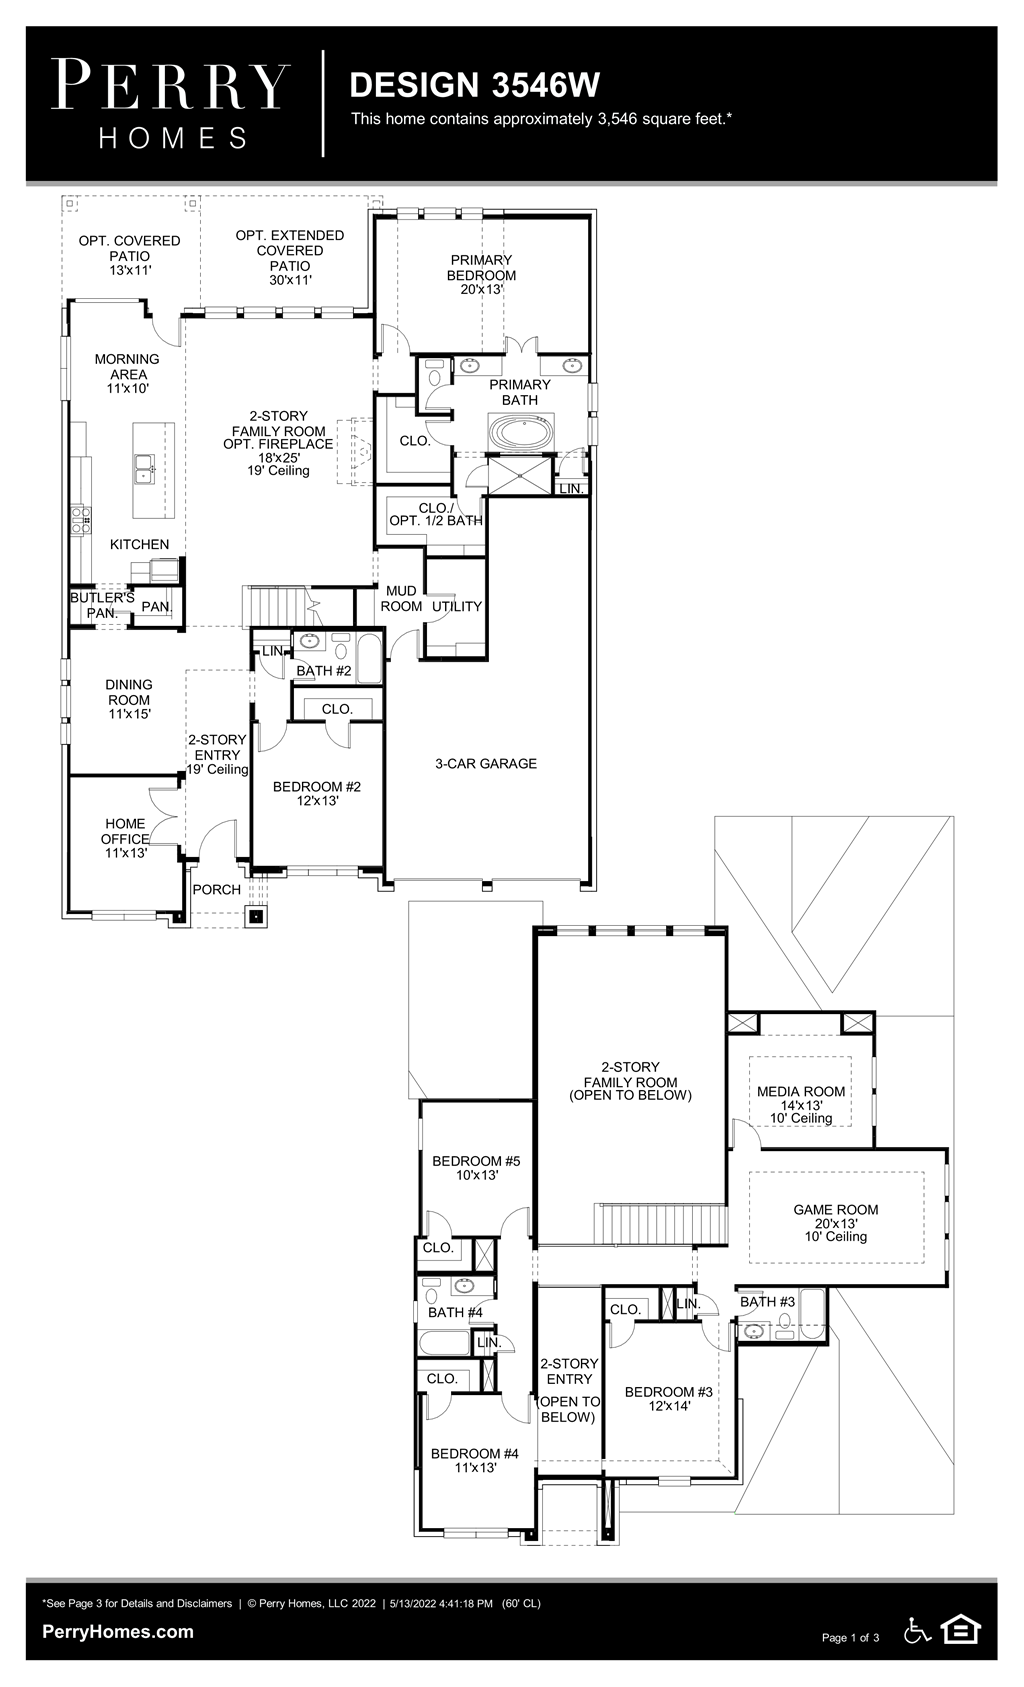 Floor Plan for 3546W